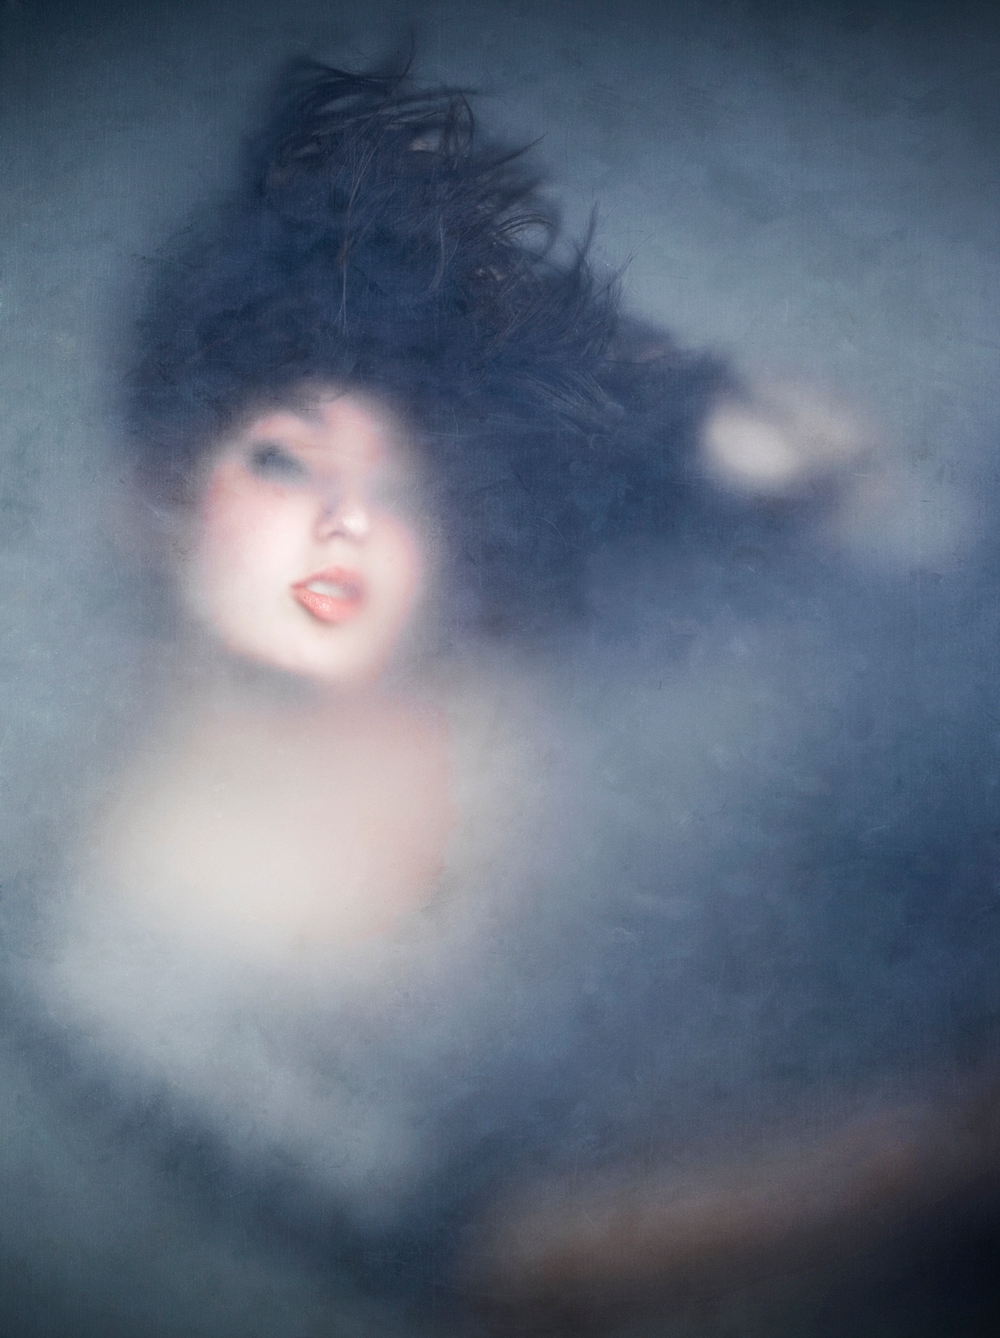 Underwater photography - Image by Erin Mulvehill